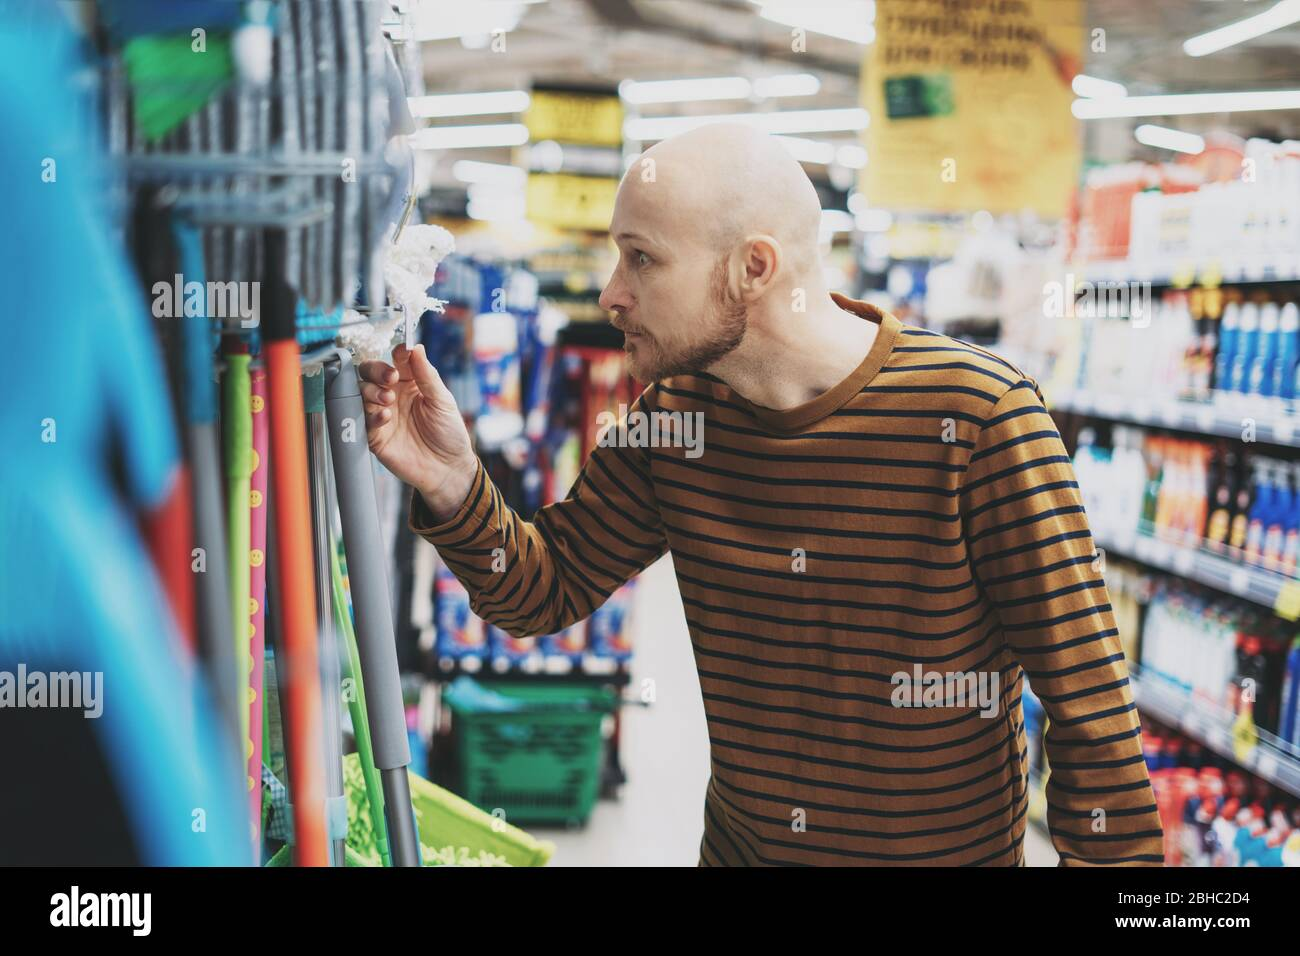 Adult bald bearded man shocked by price in hardware department of supermarket Stock Photo